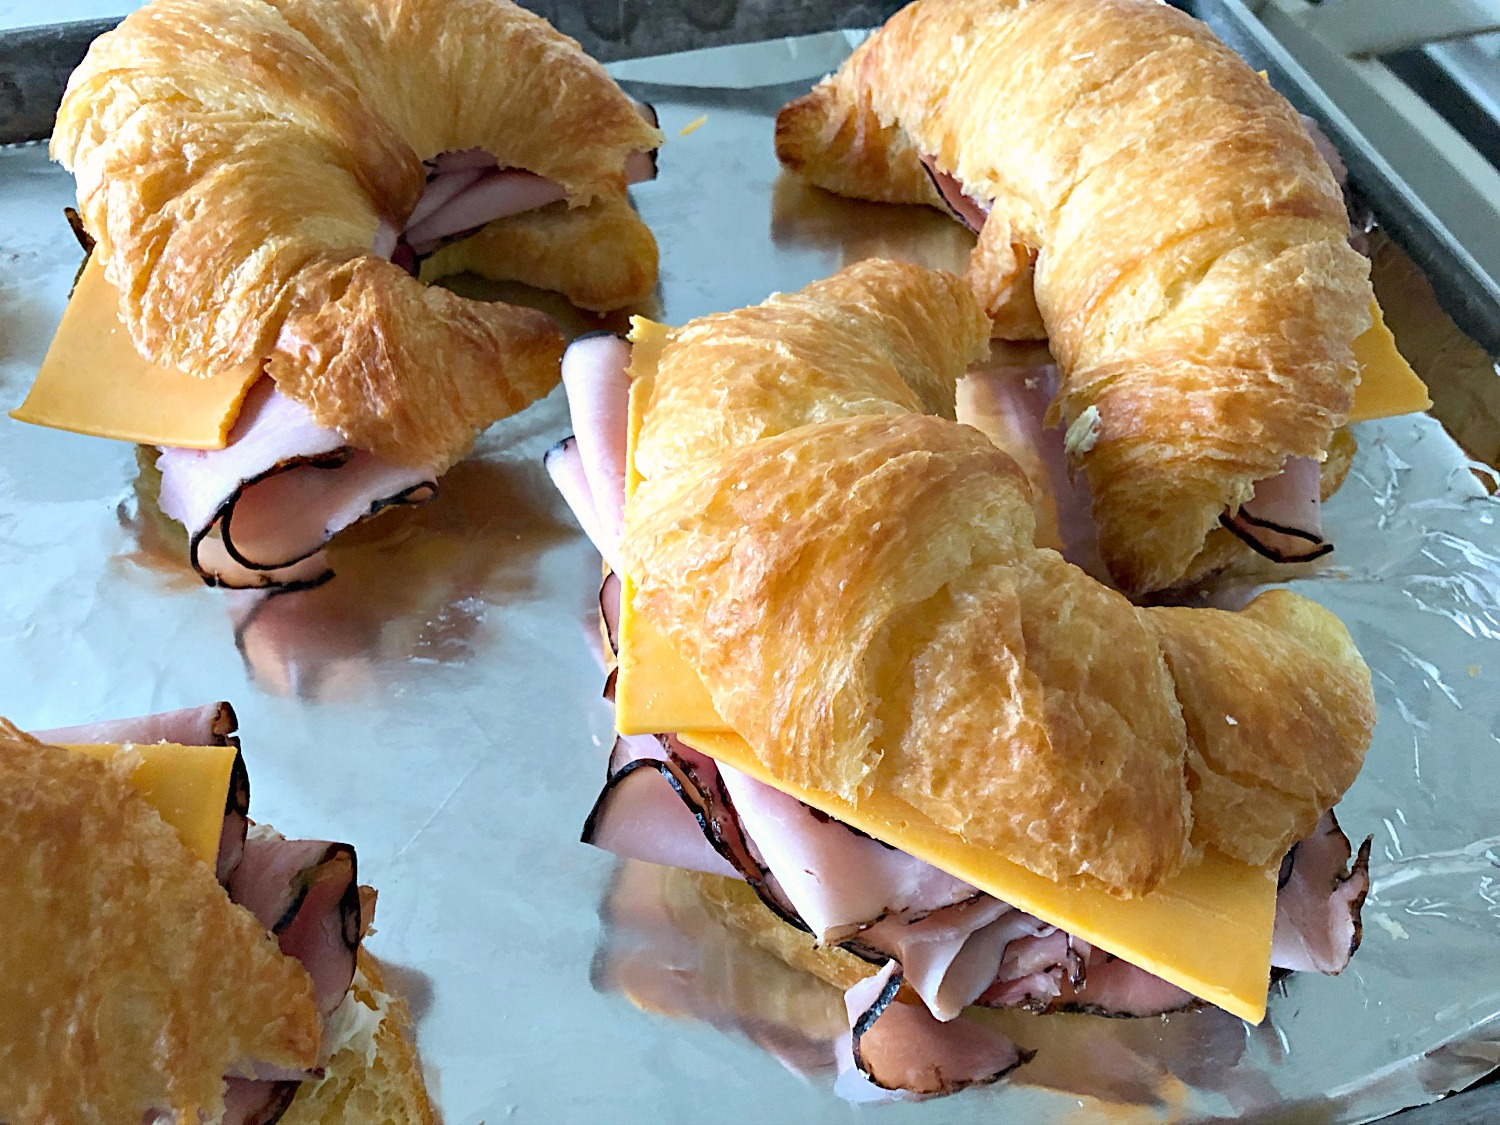 Ham and Cheese Croissant Sandwiches on sheet pan ready to bake